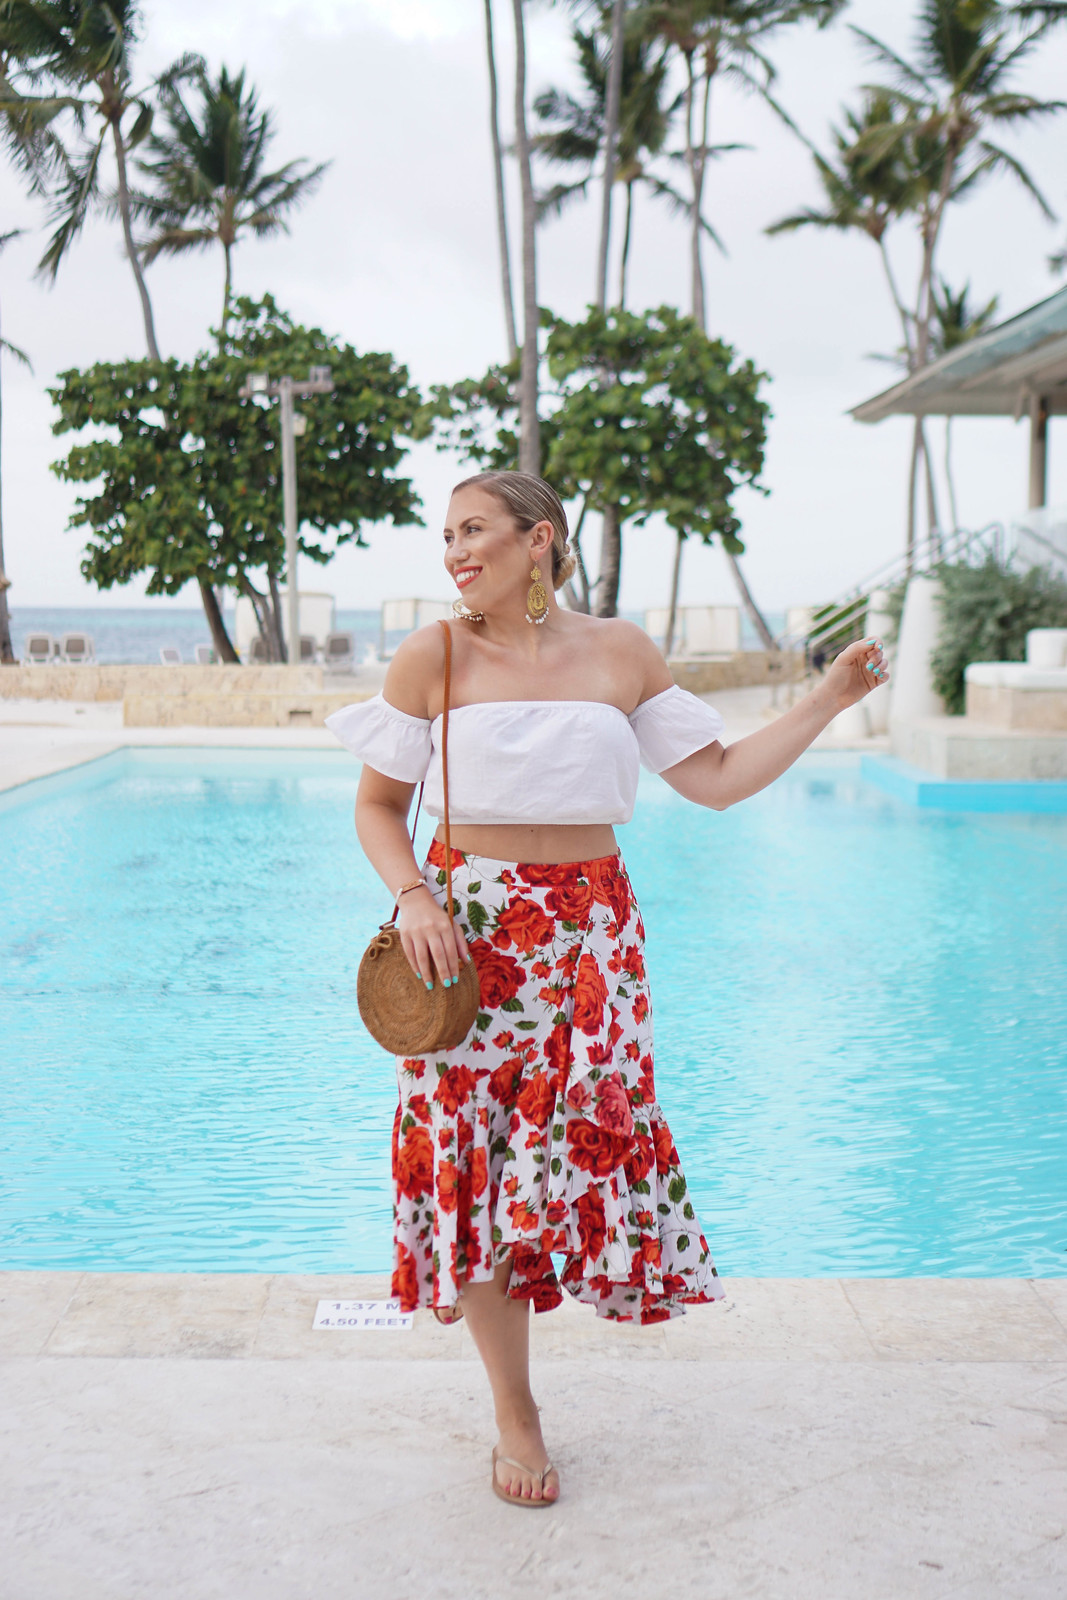 The Best Camera to Take on Vacation | Tropical Beach Summer Vacation Outfit Inspiration